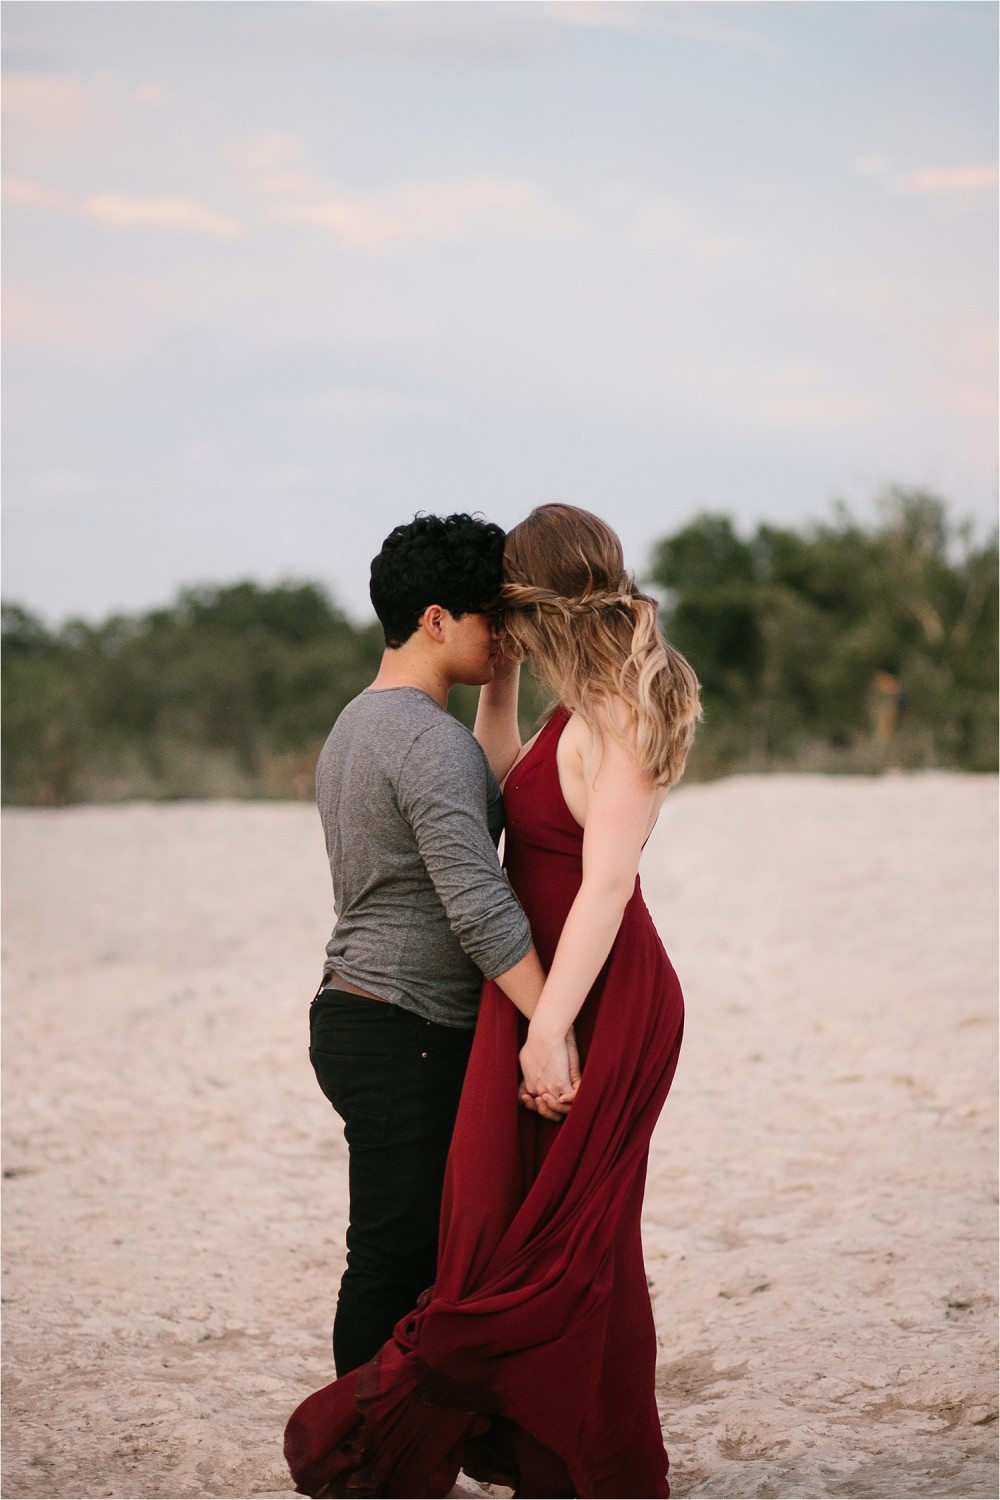 Romantic Austin, Texas Engagement Session with outfit inspiration + flowy red dress from Lulu's at Mckinney Falls State Park by North Texas Wedding Photographer, Rachel Meagan Photography __ 52